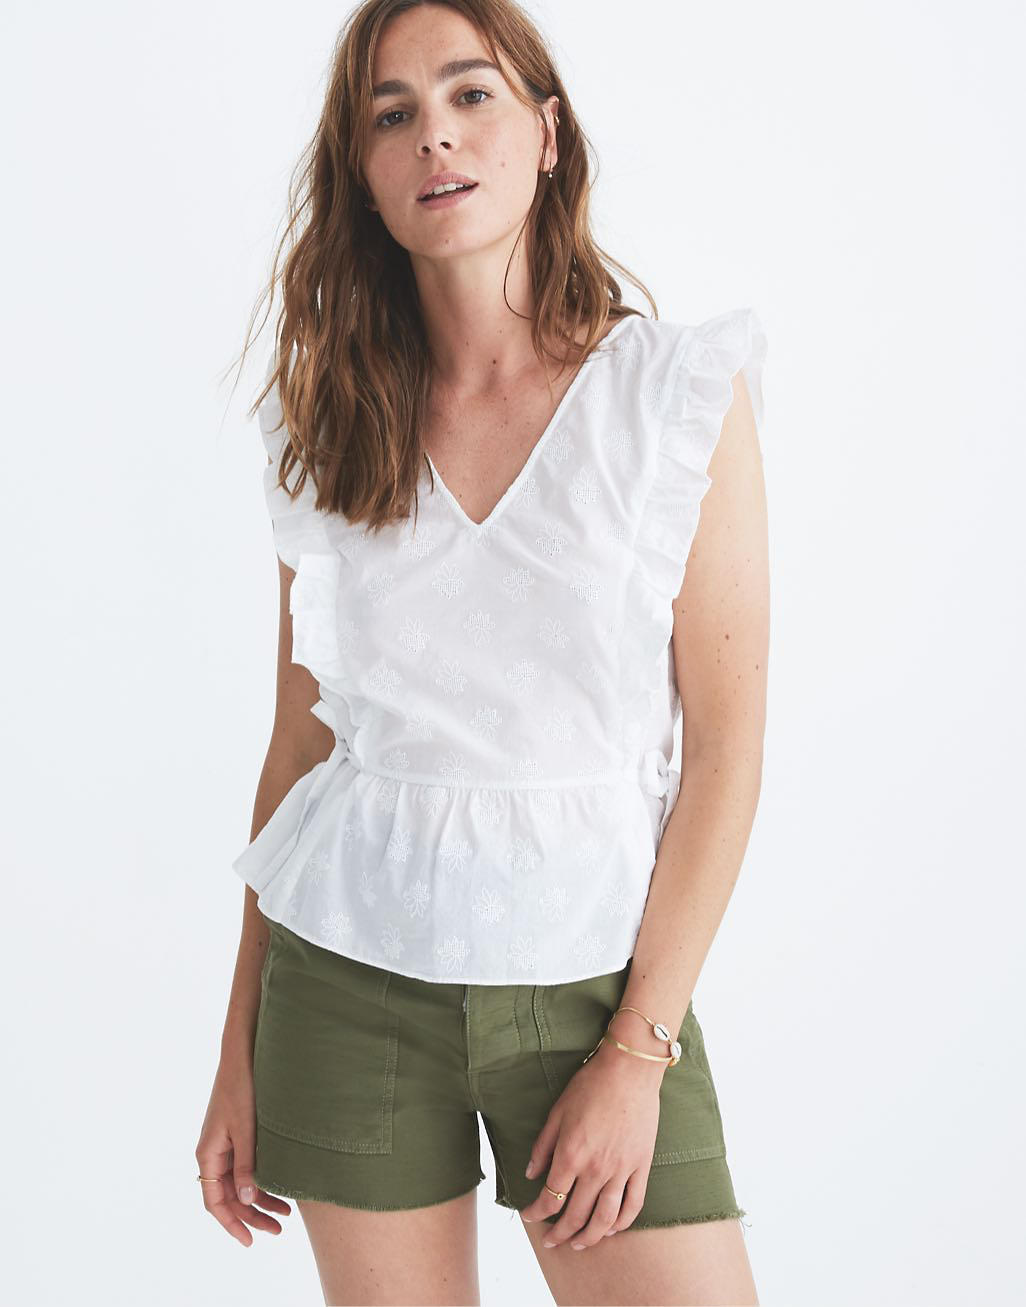 8e62edc48493 Madewell | Women's clothing: great jeans, shoes, bags + more